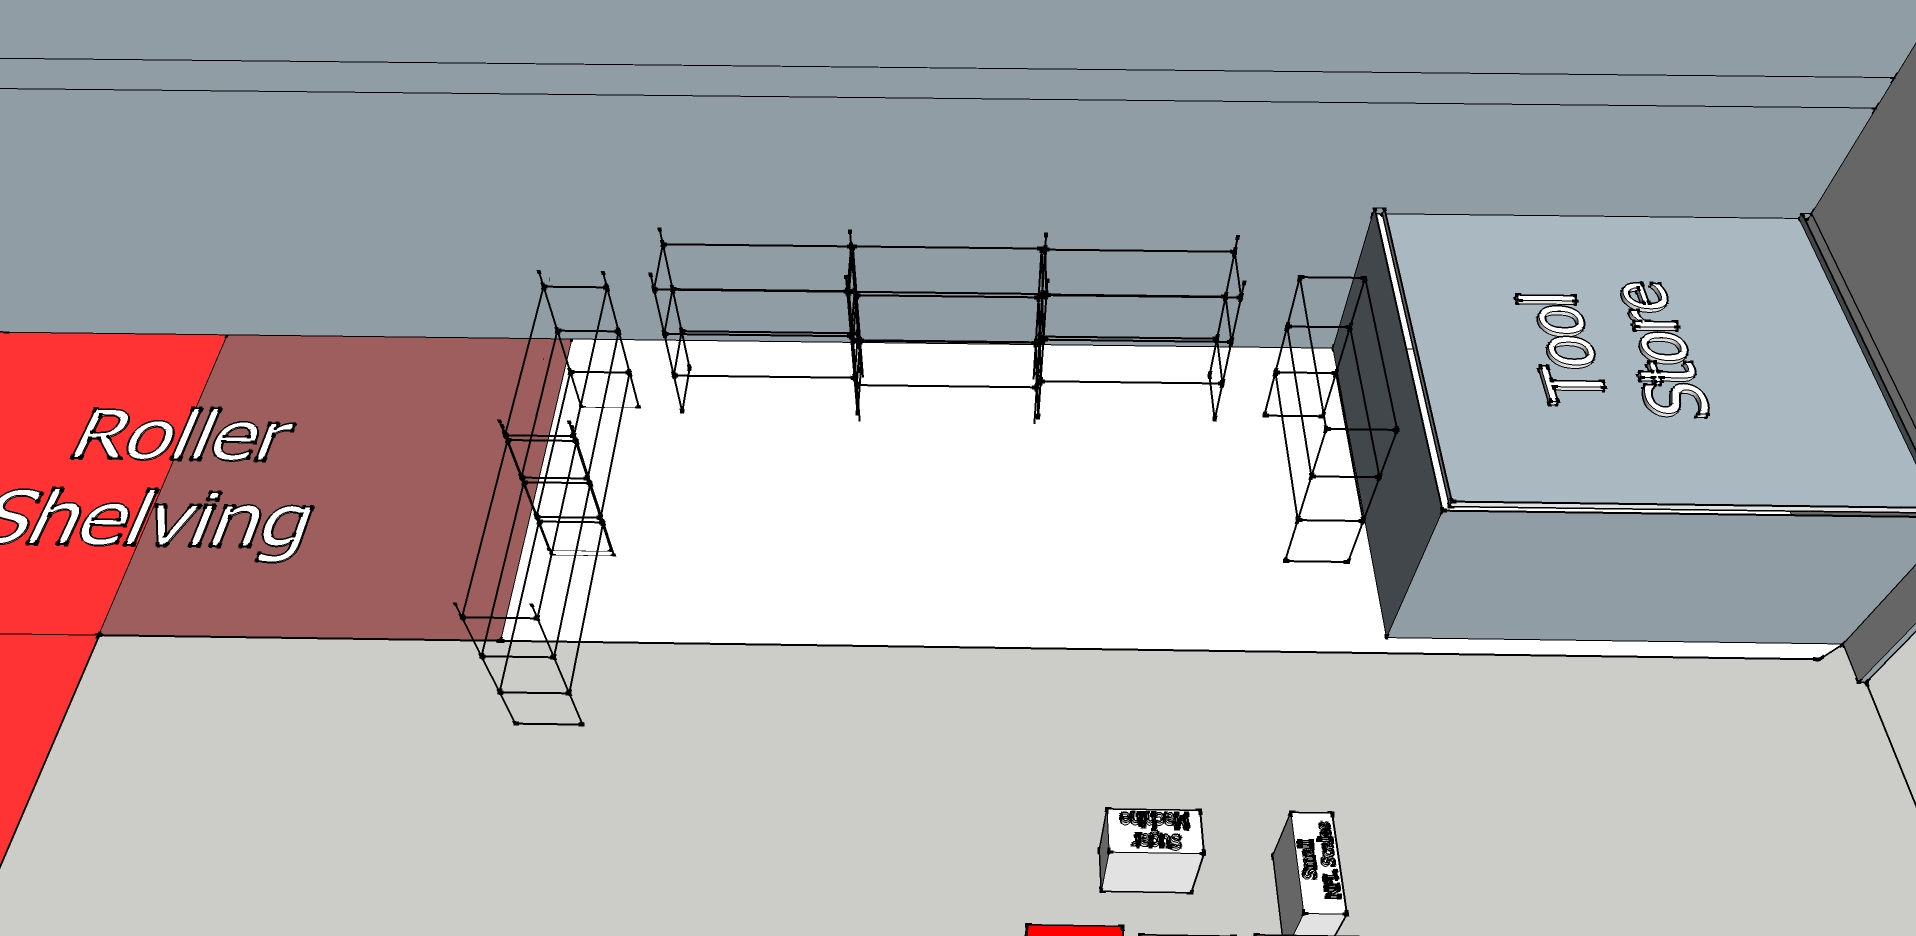 One of three alternative new layouts for pallet racking that were discussed before a final decision was made.